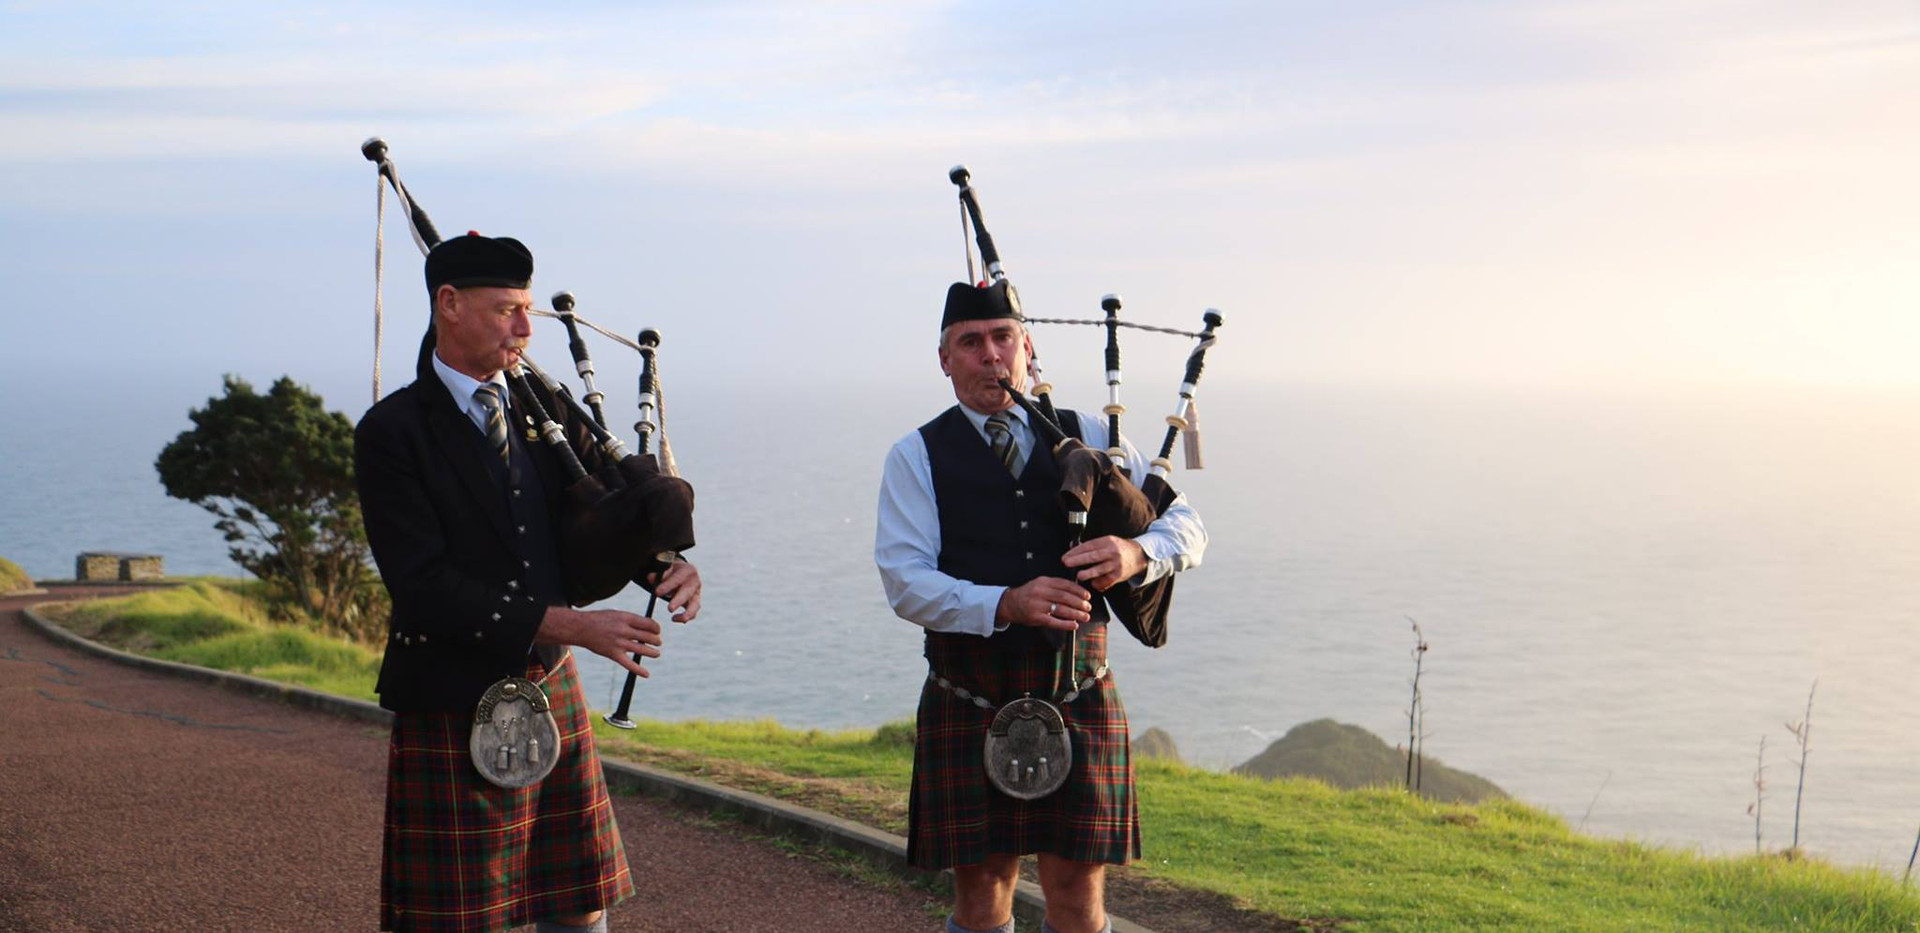 Ex Pipe Major Bain McGregor and NorthCal member Mike Plant